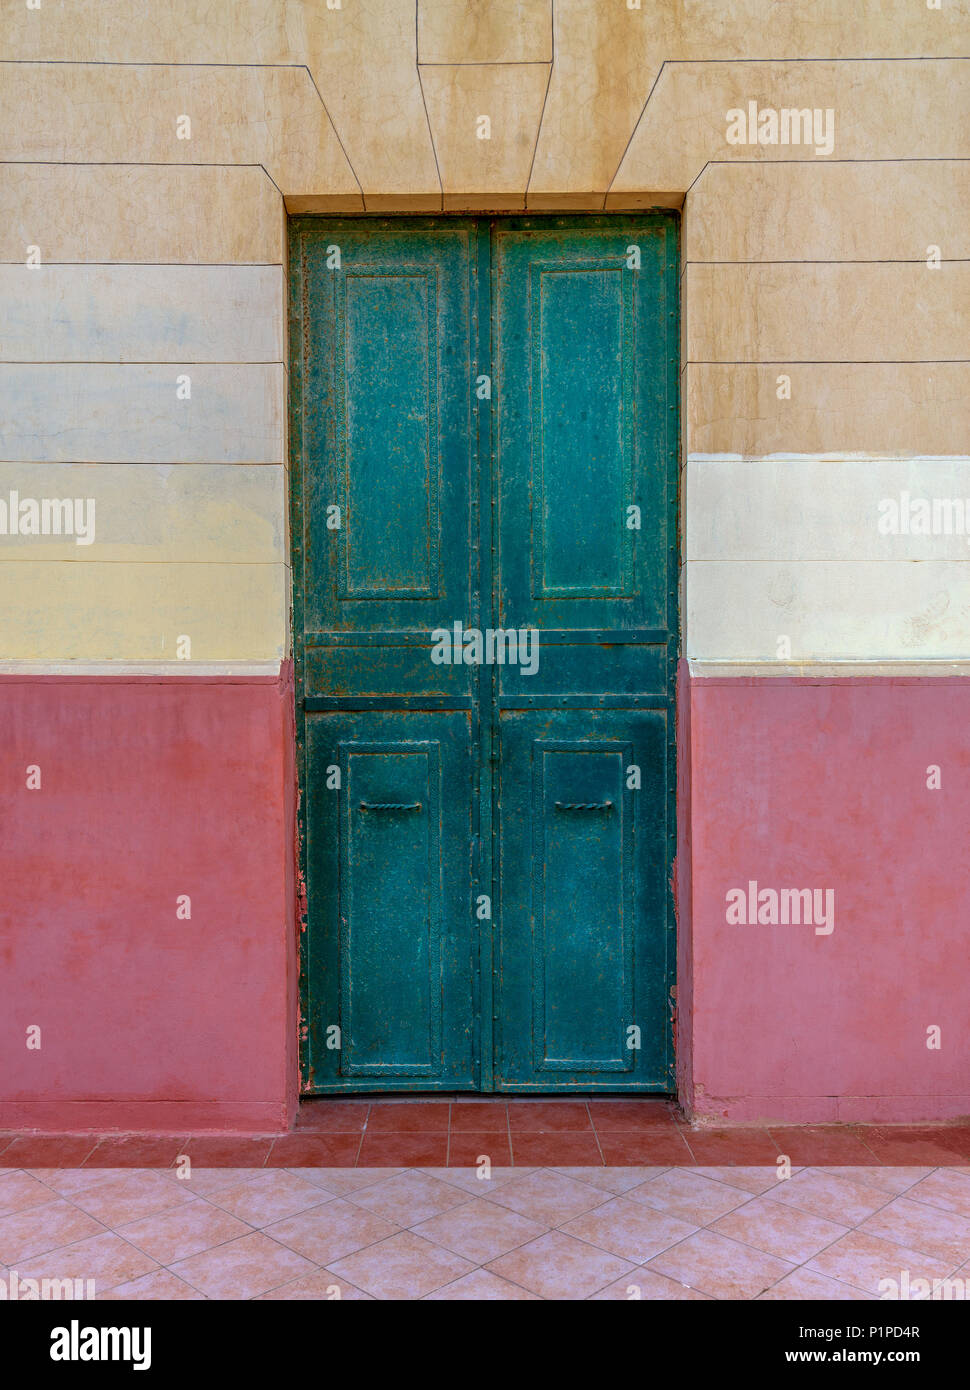 Old grunge green wooden door in an old wall painted in beige and red, Montaza Public Park, Alexandria, Egypt - Stock Image